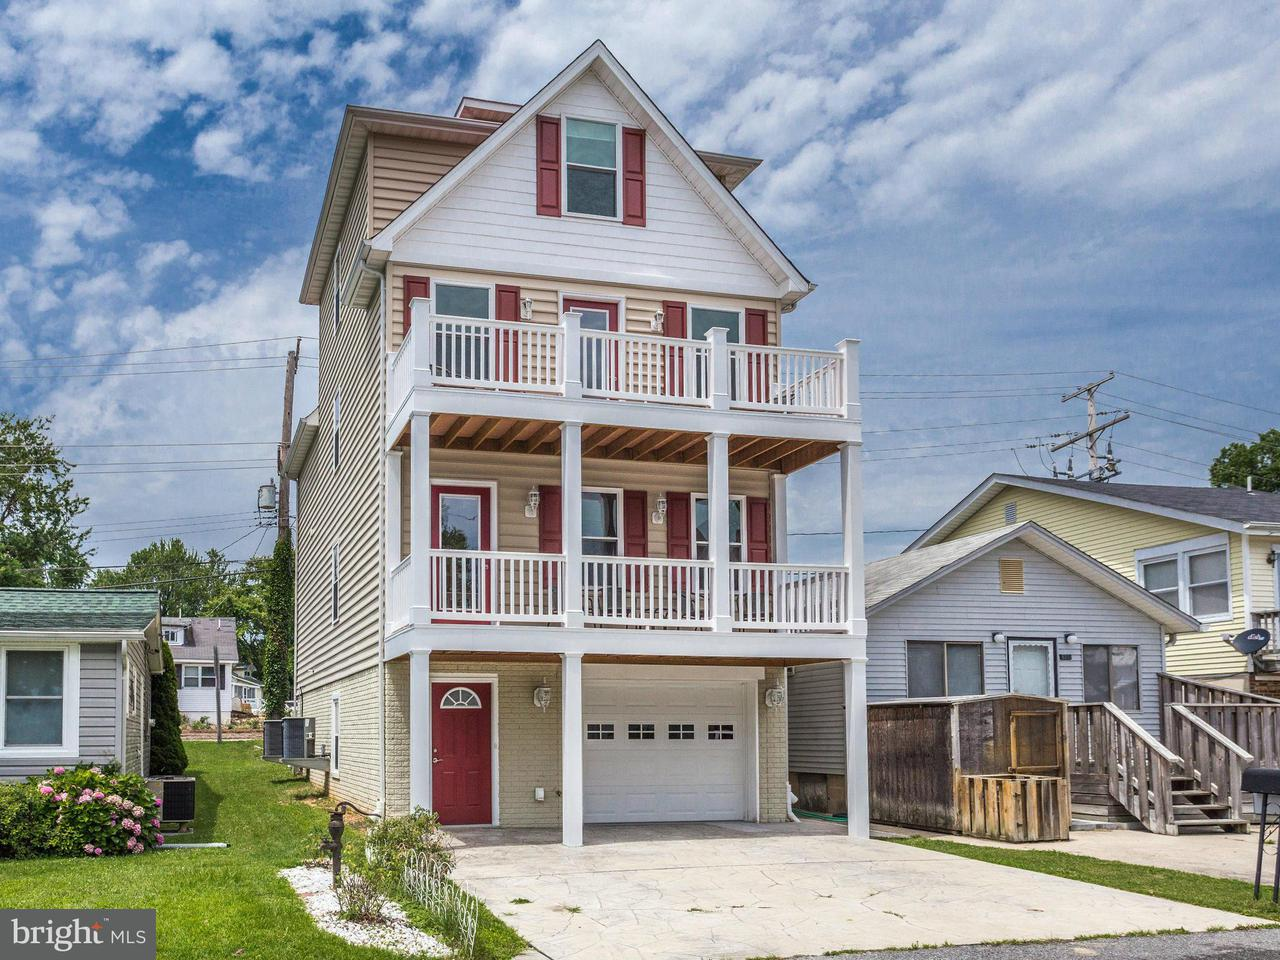 Vivienda unifamiliar por un Venta en 8229 Bayside Road 8229 Bayside Road Chesapeake Beach, Maryland 20732 Estados Unidos